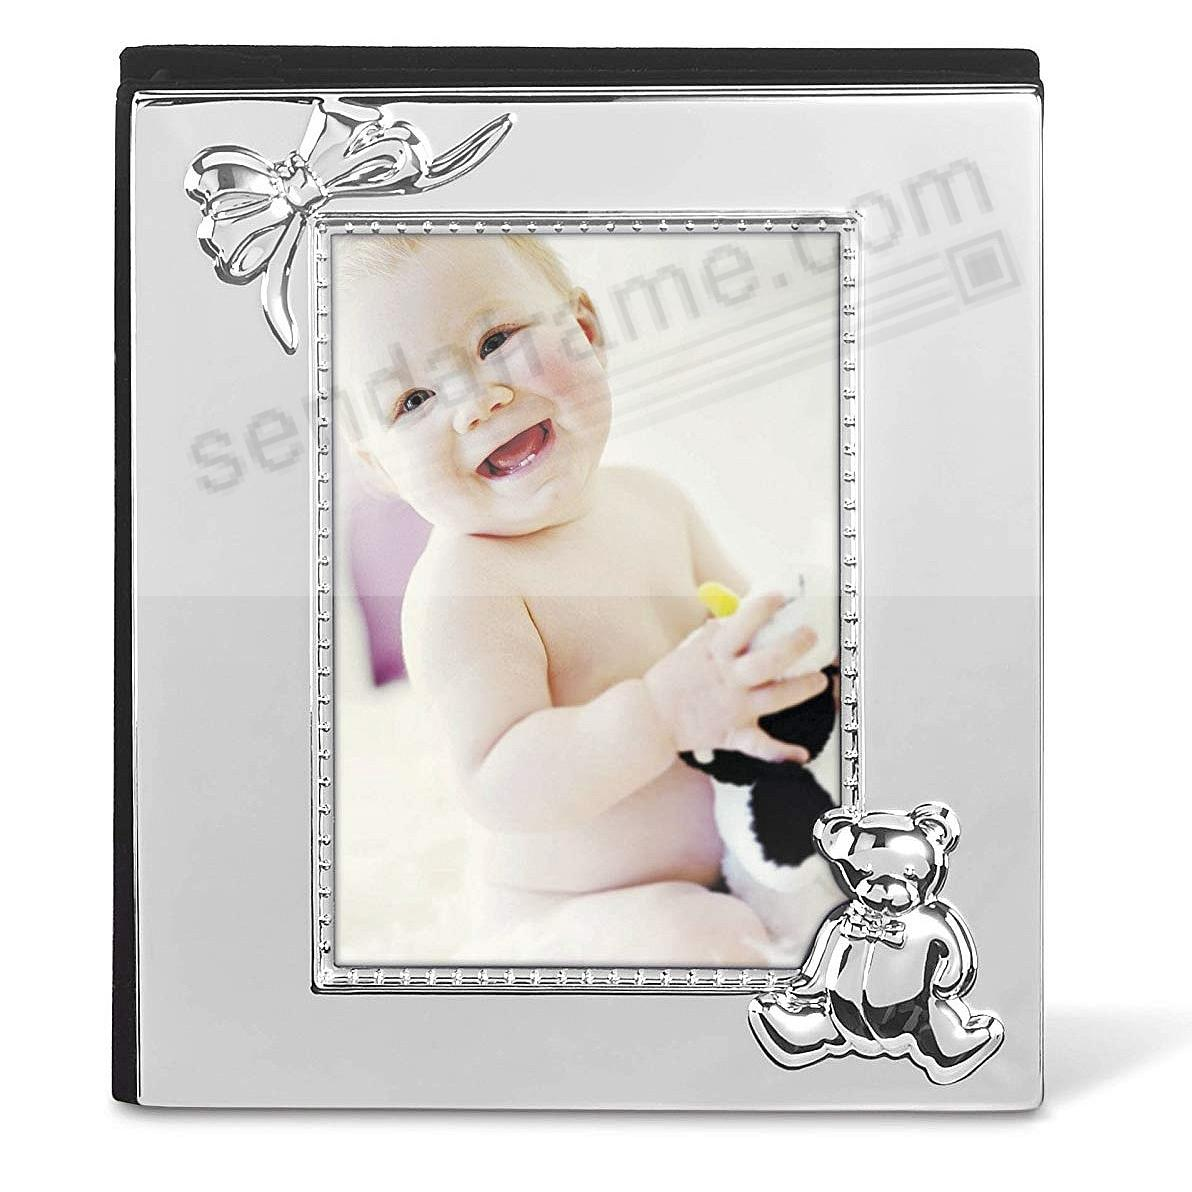 Childhood Memories™ Silver Bear 4x6 Album w/Cover Frame by Lenox